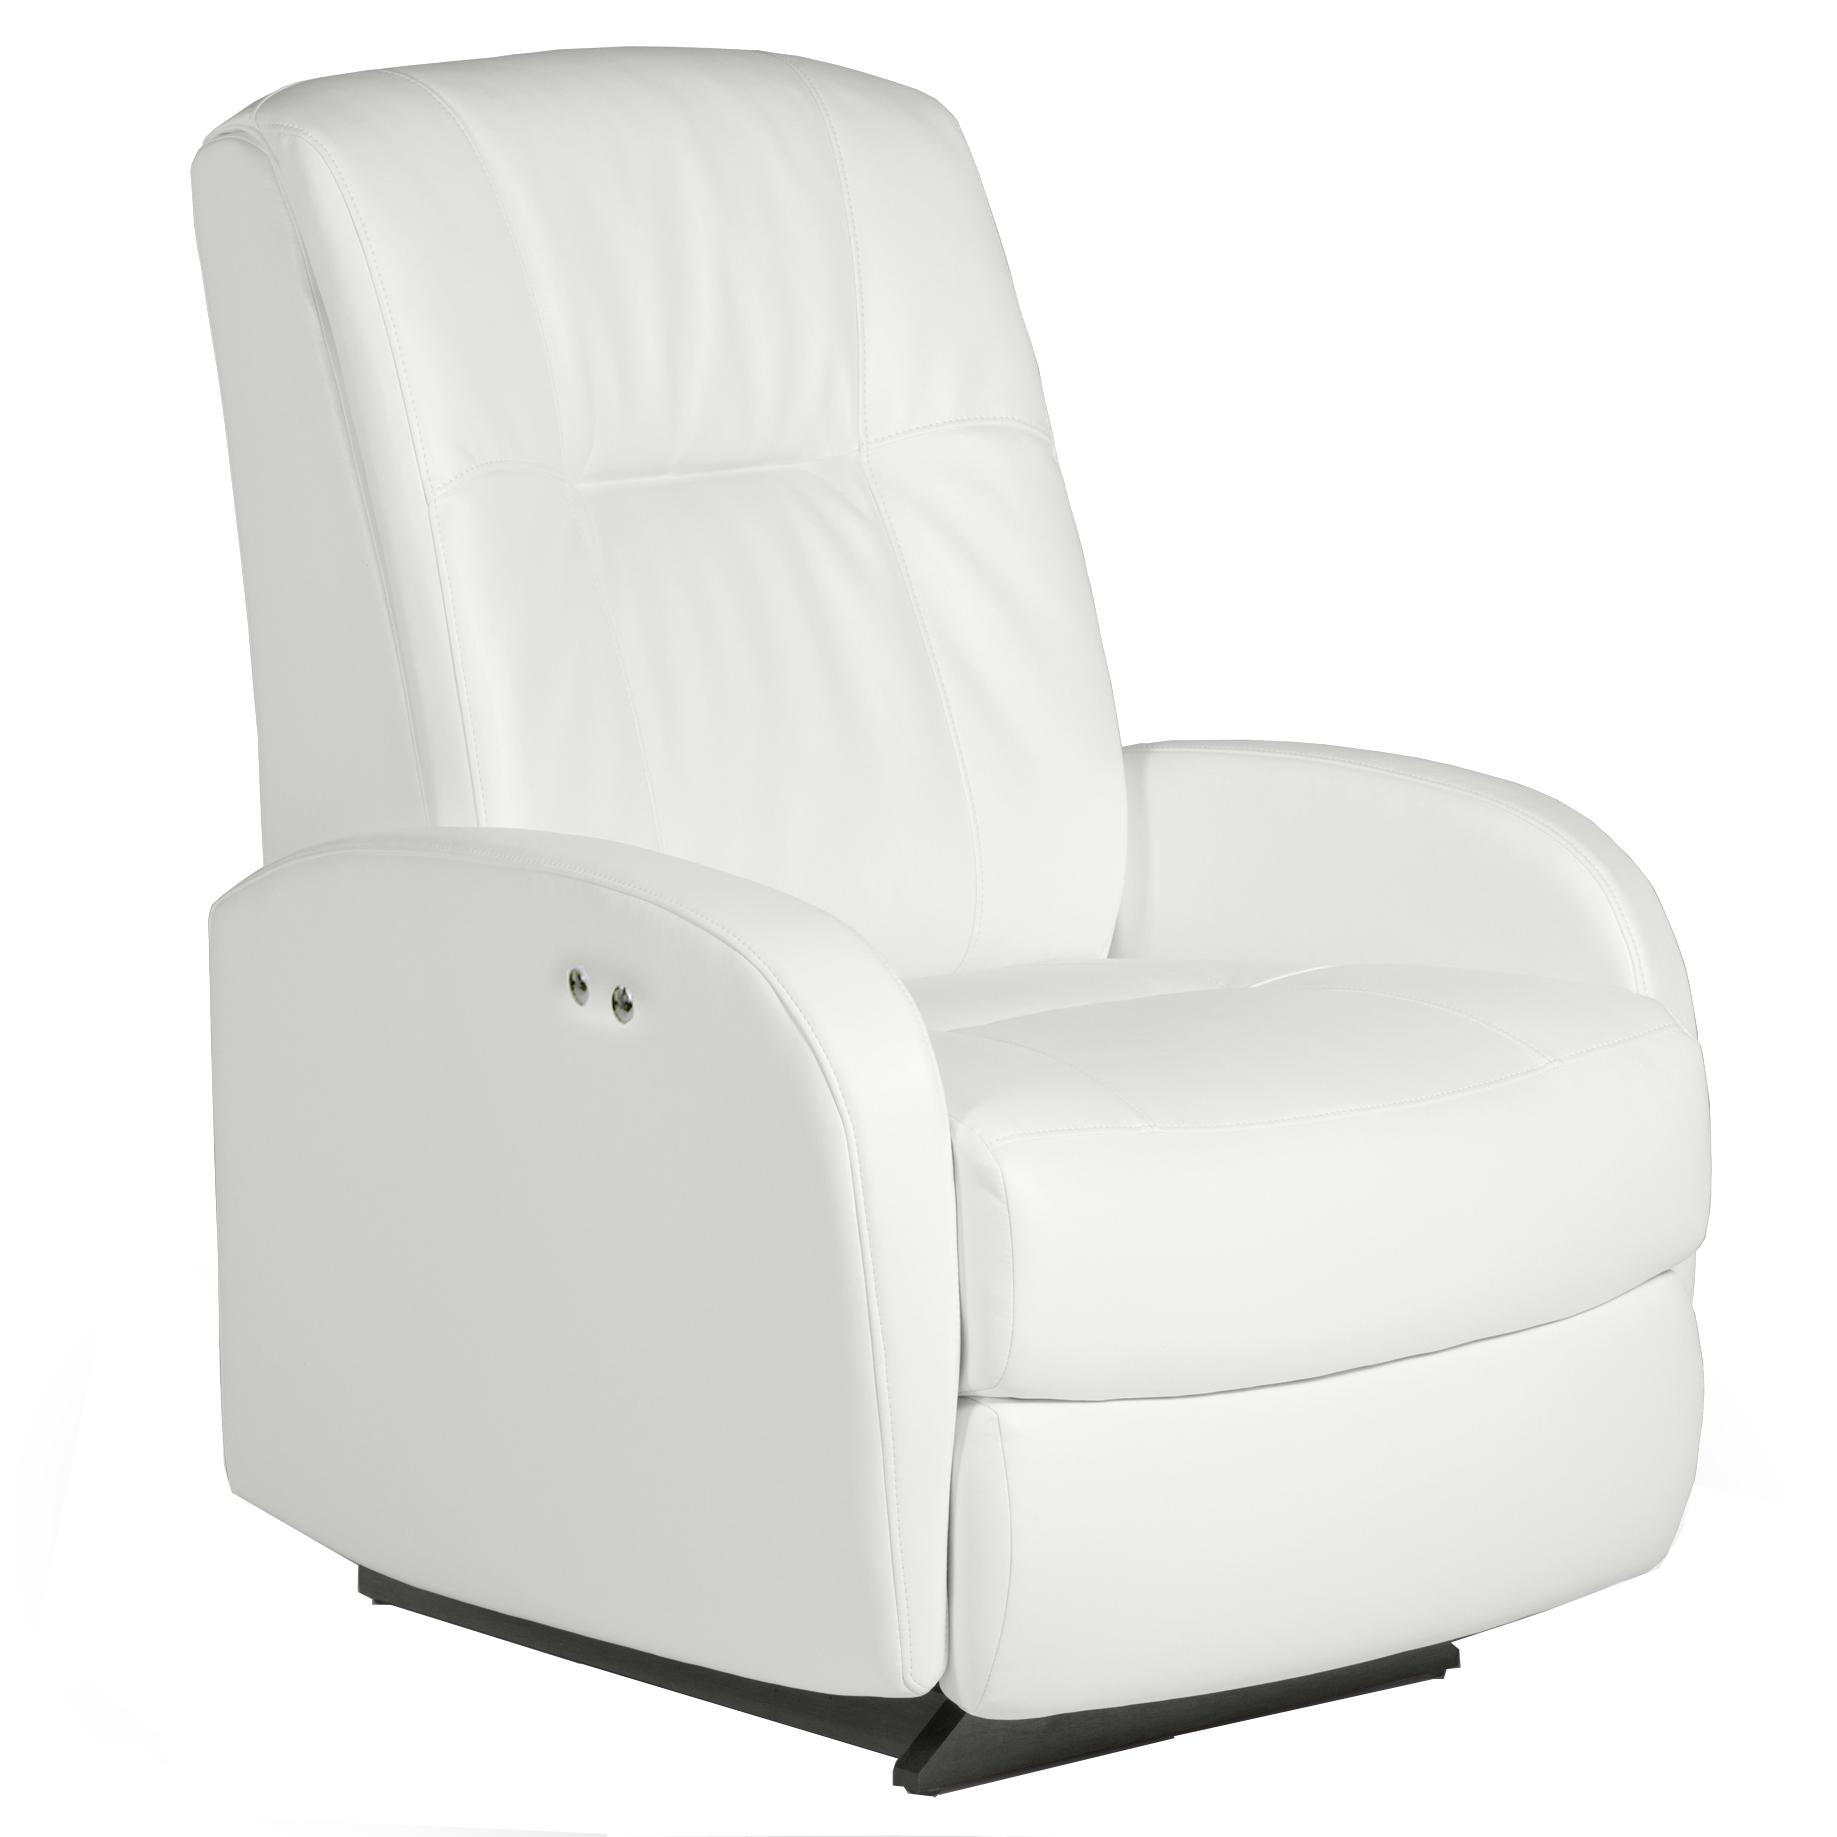 Ruddick Rocker Recliner by Best Home Furnishings at Alison Craig Home Furnishings